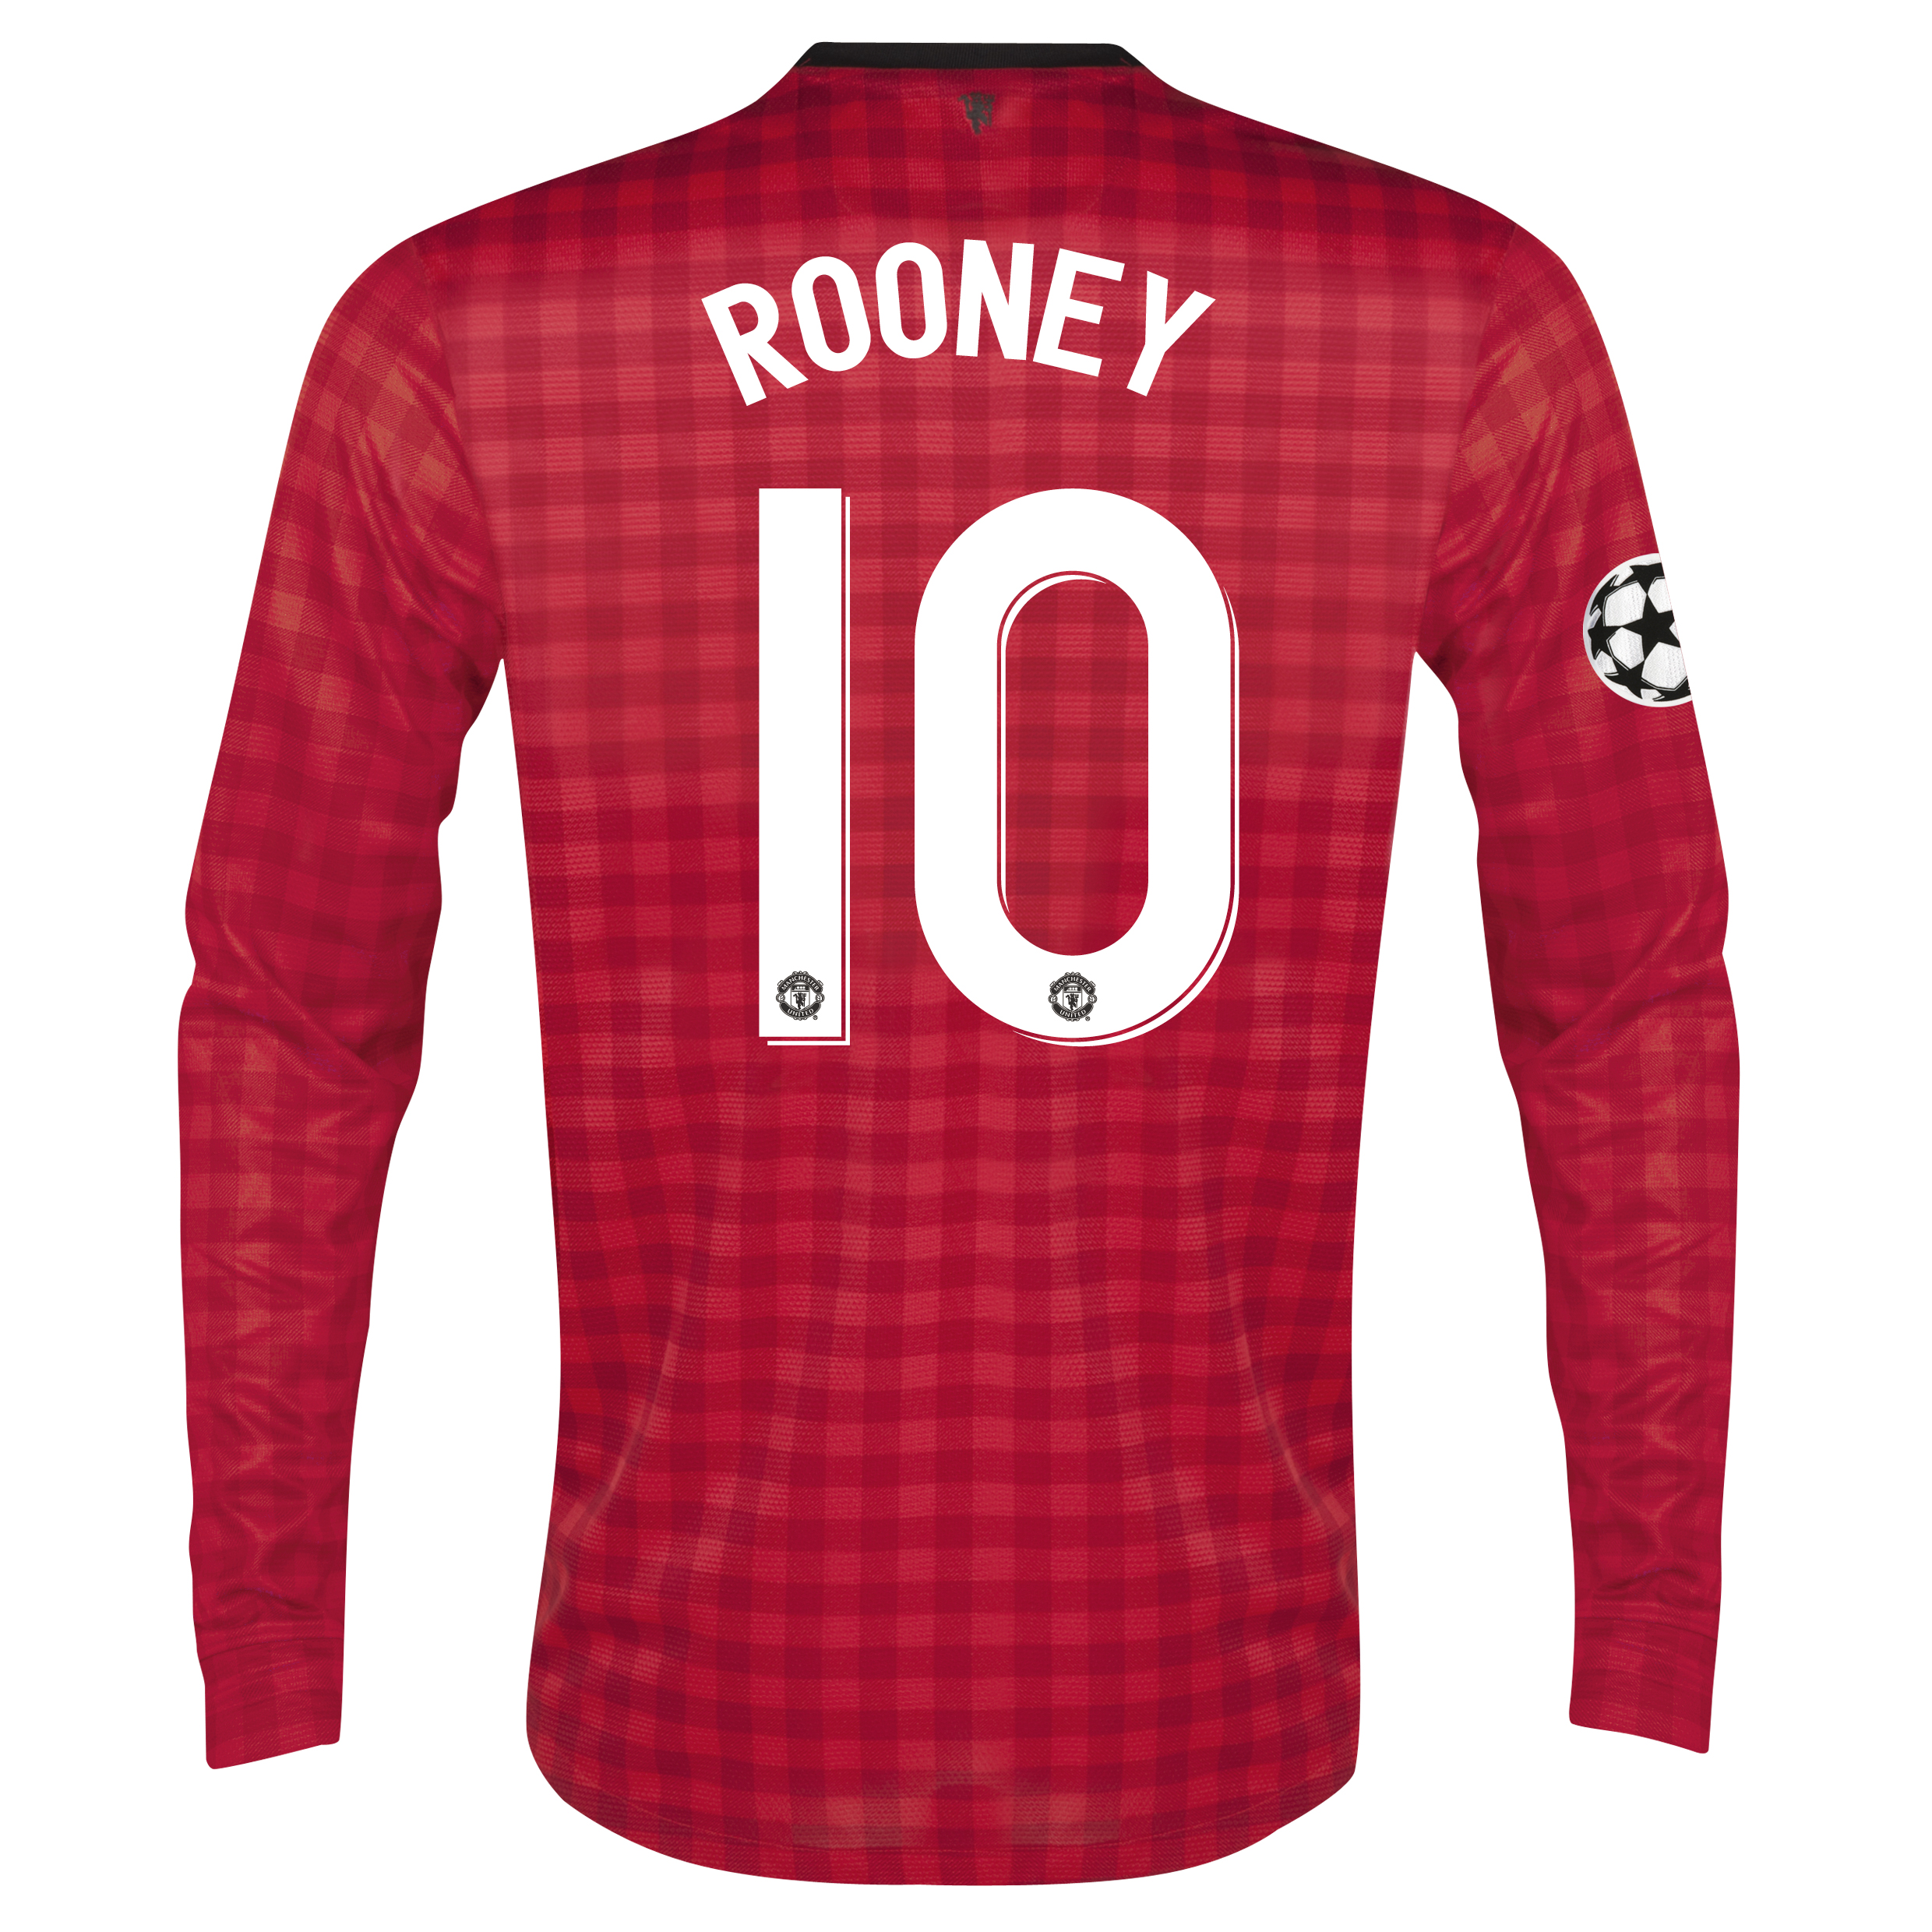 Man United UEFA Champions League Home Shirt 2012/13 - Long Sleeved with Rooney 10 printing